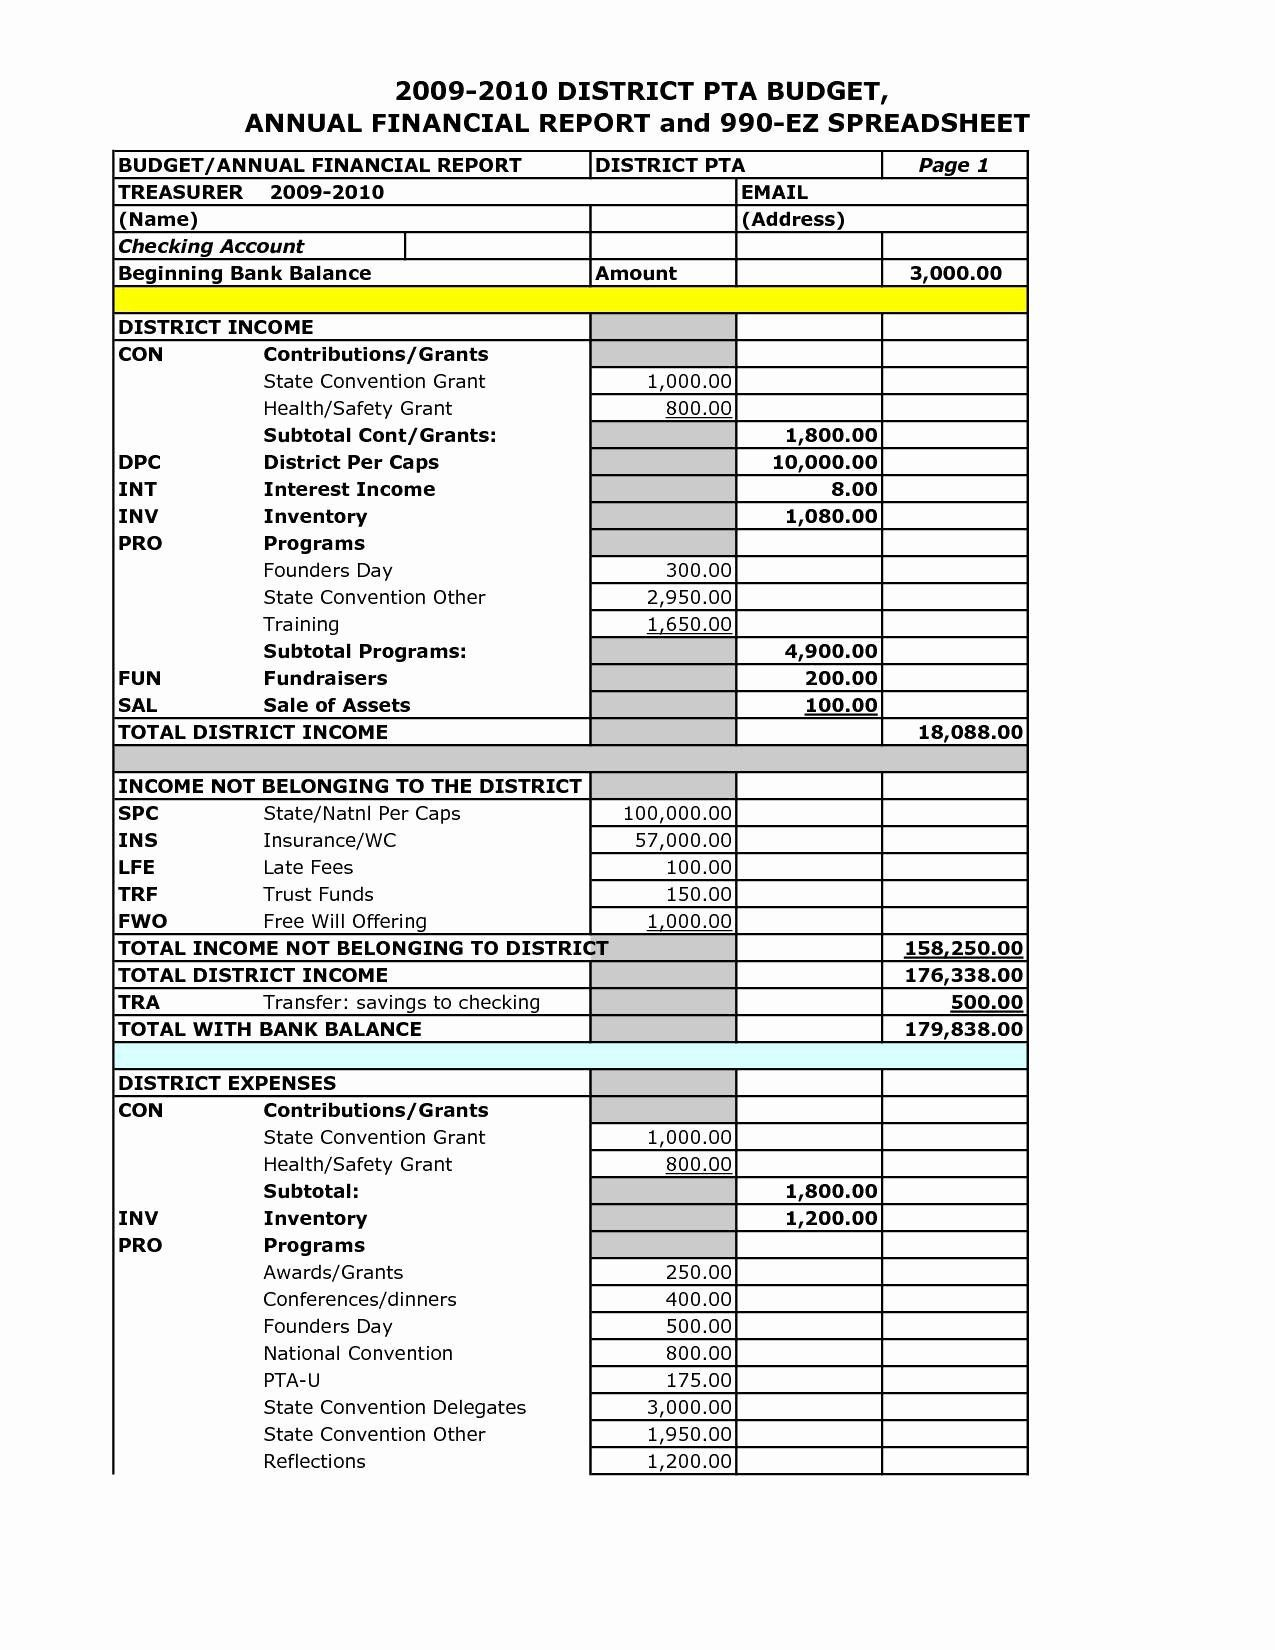 004 Remarkable Financial Statement Template Word High Def  Busines PersonalFull